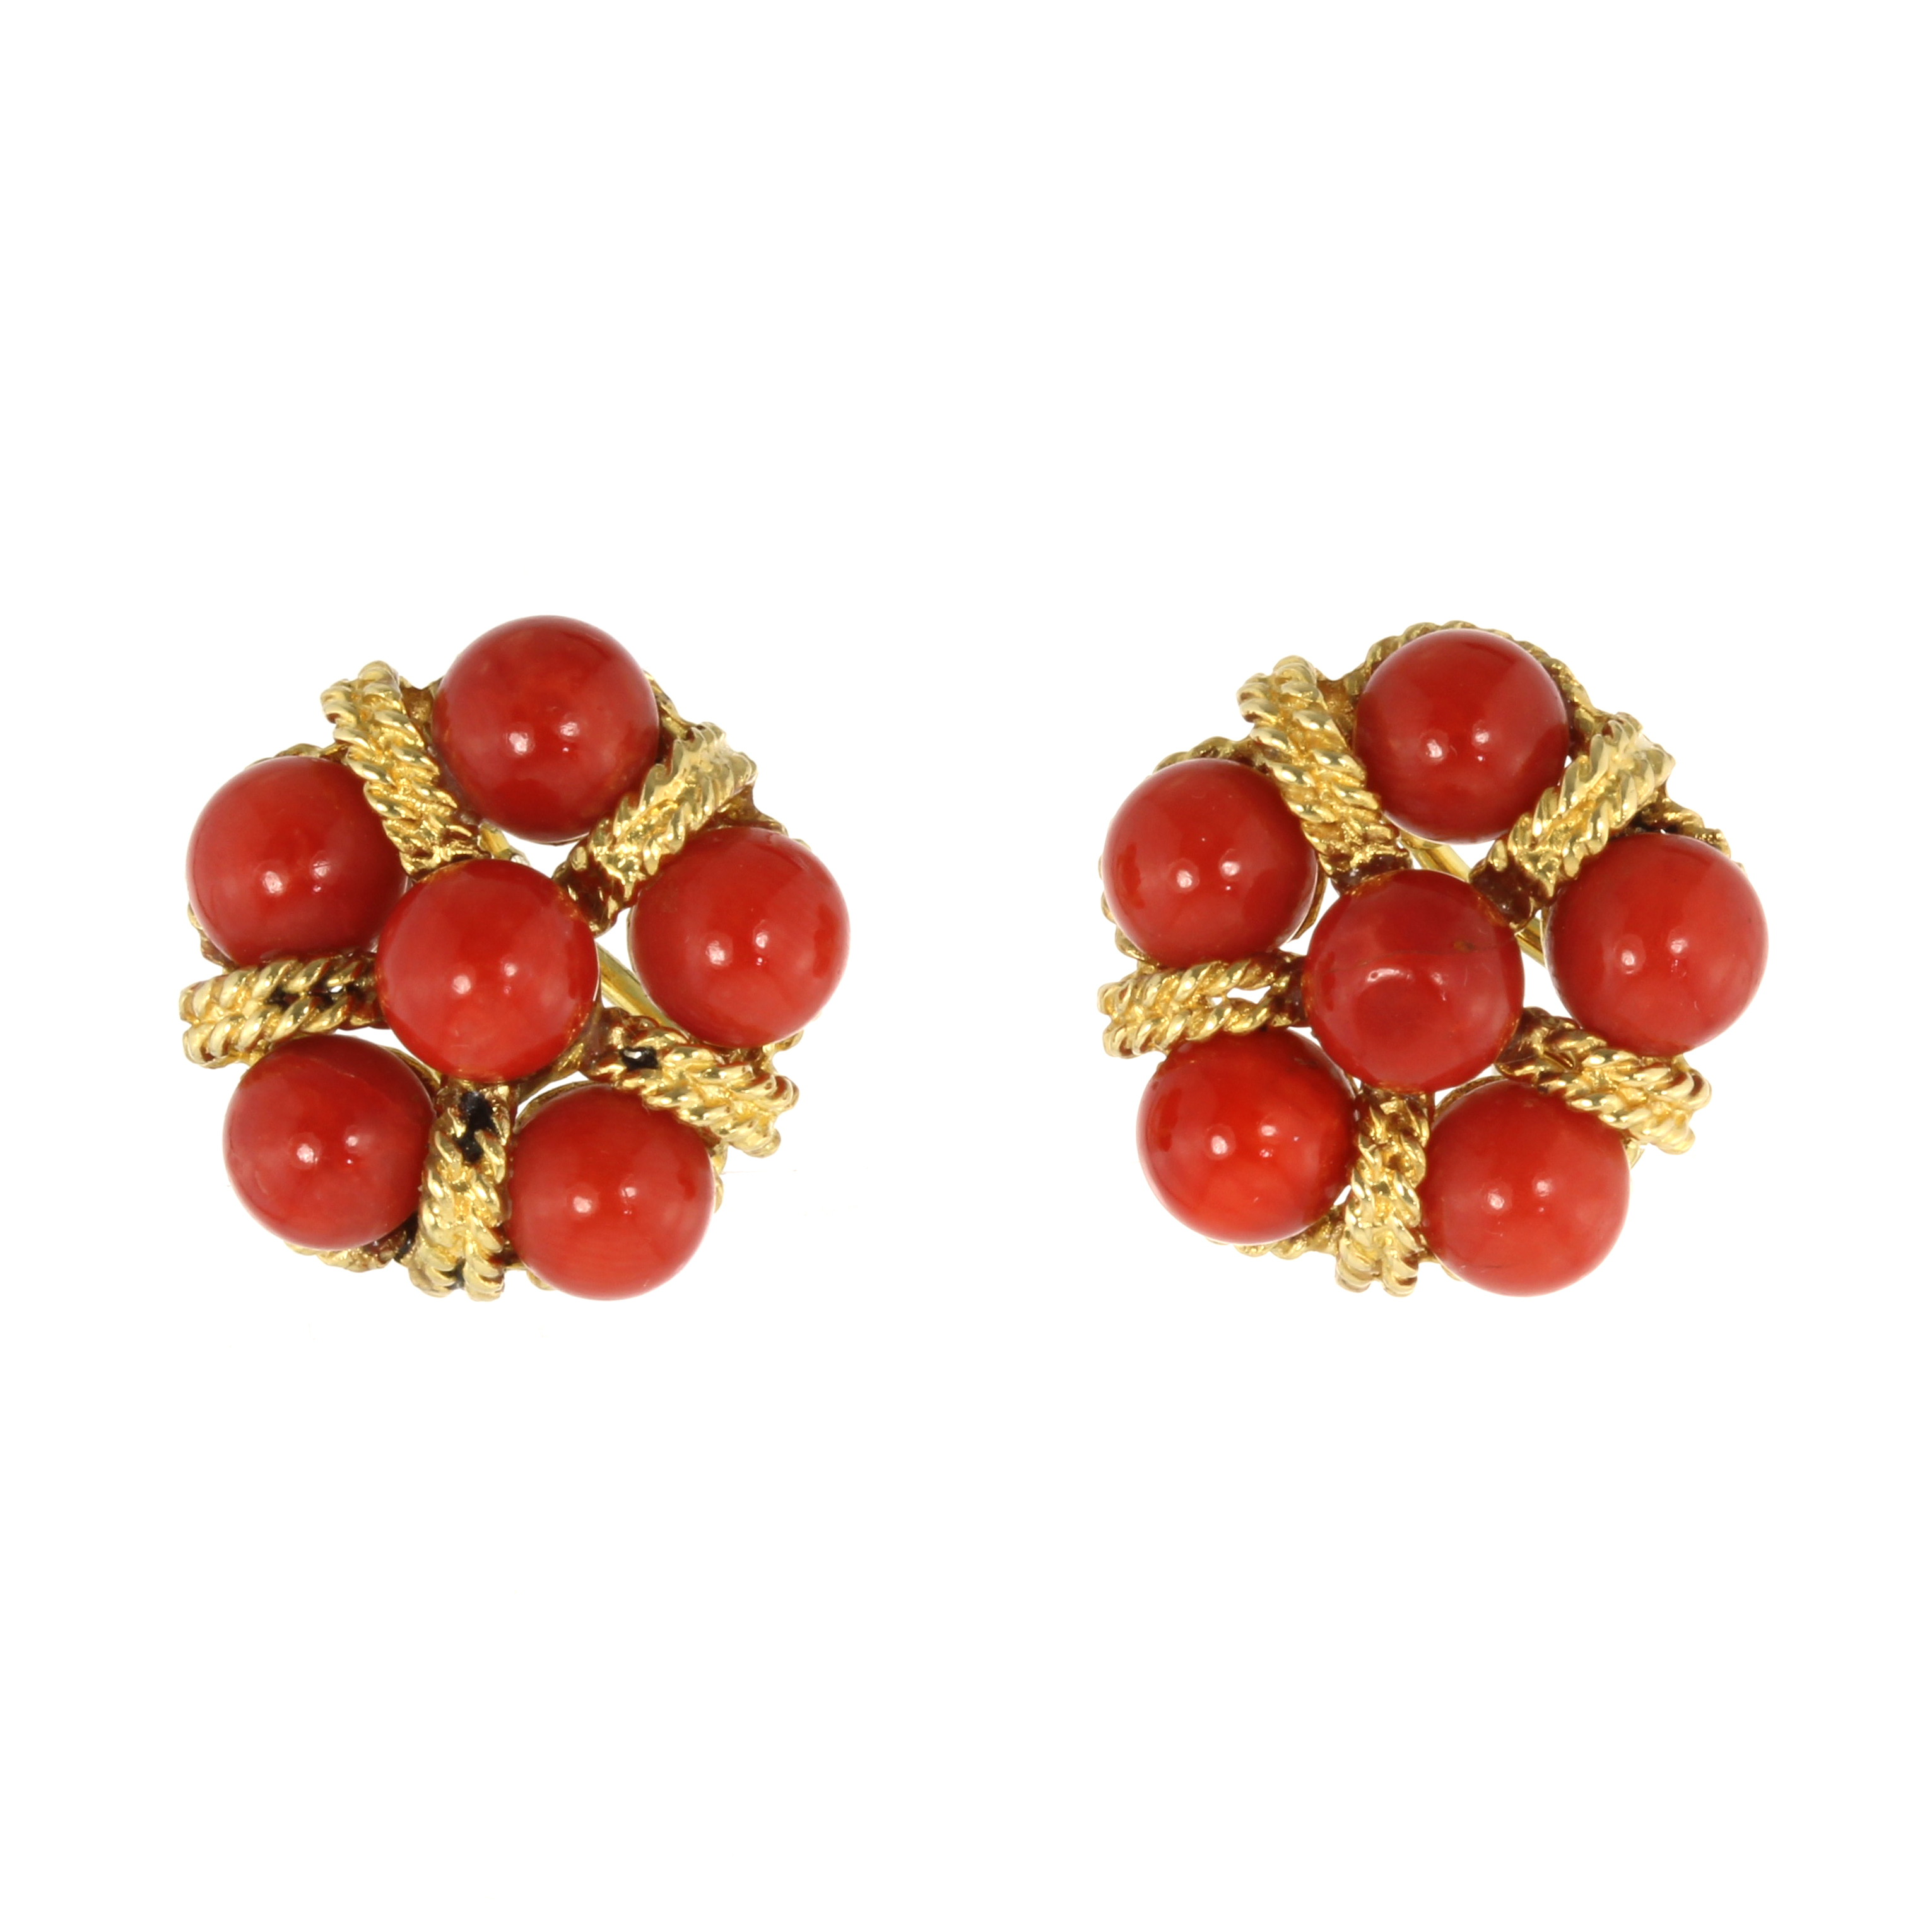 Los 16 - A PAIR OF CORAL EARRINGS, CIRCA 1970 each set with a cluster of six coral beads within twisted